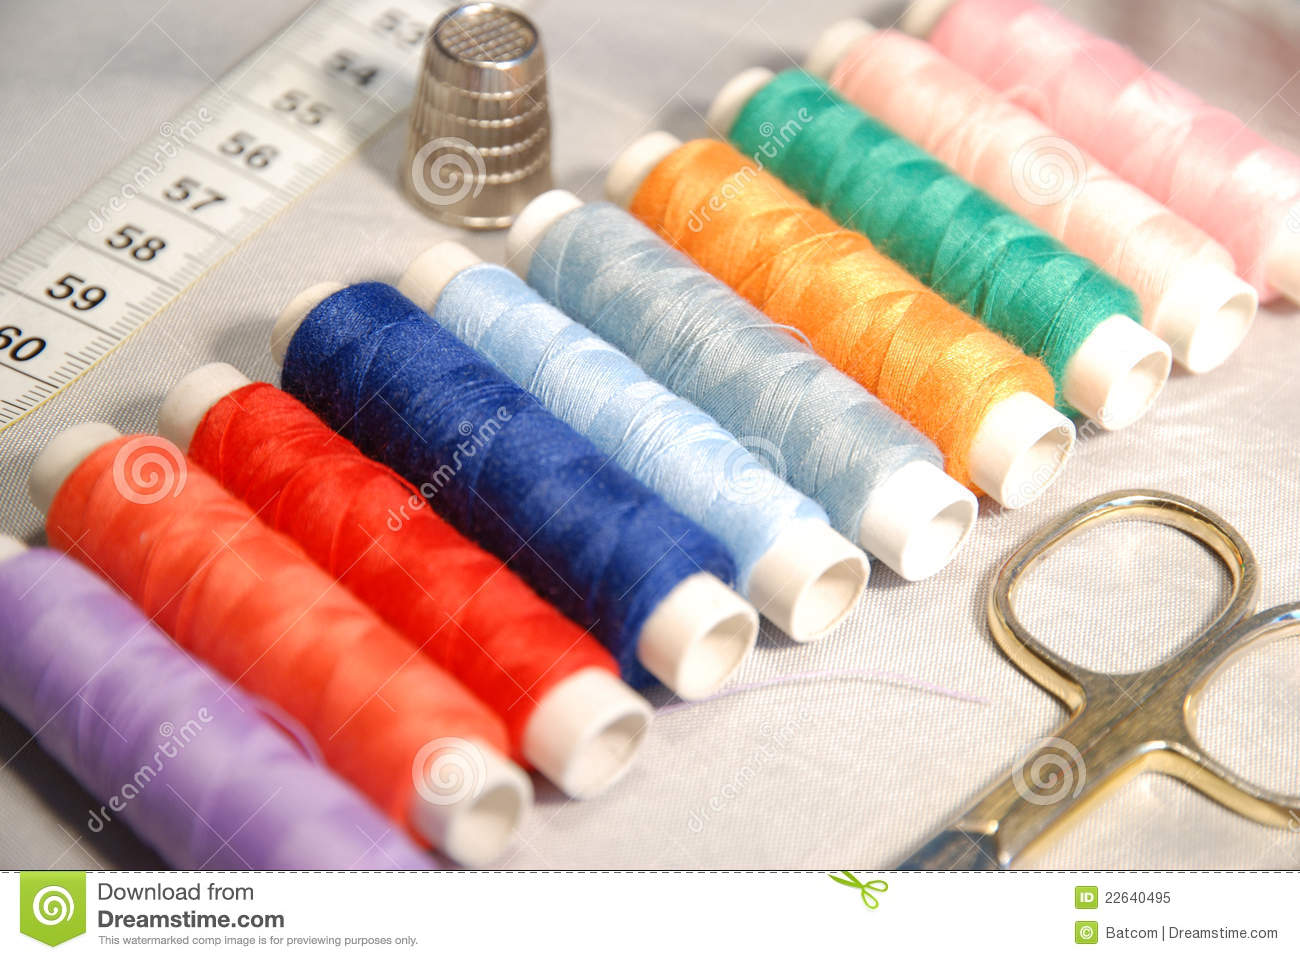 Sewing equipment stock image. Image of clothing, sewing ...